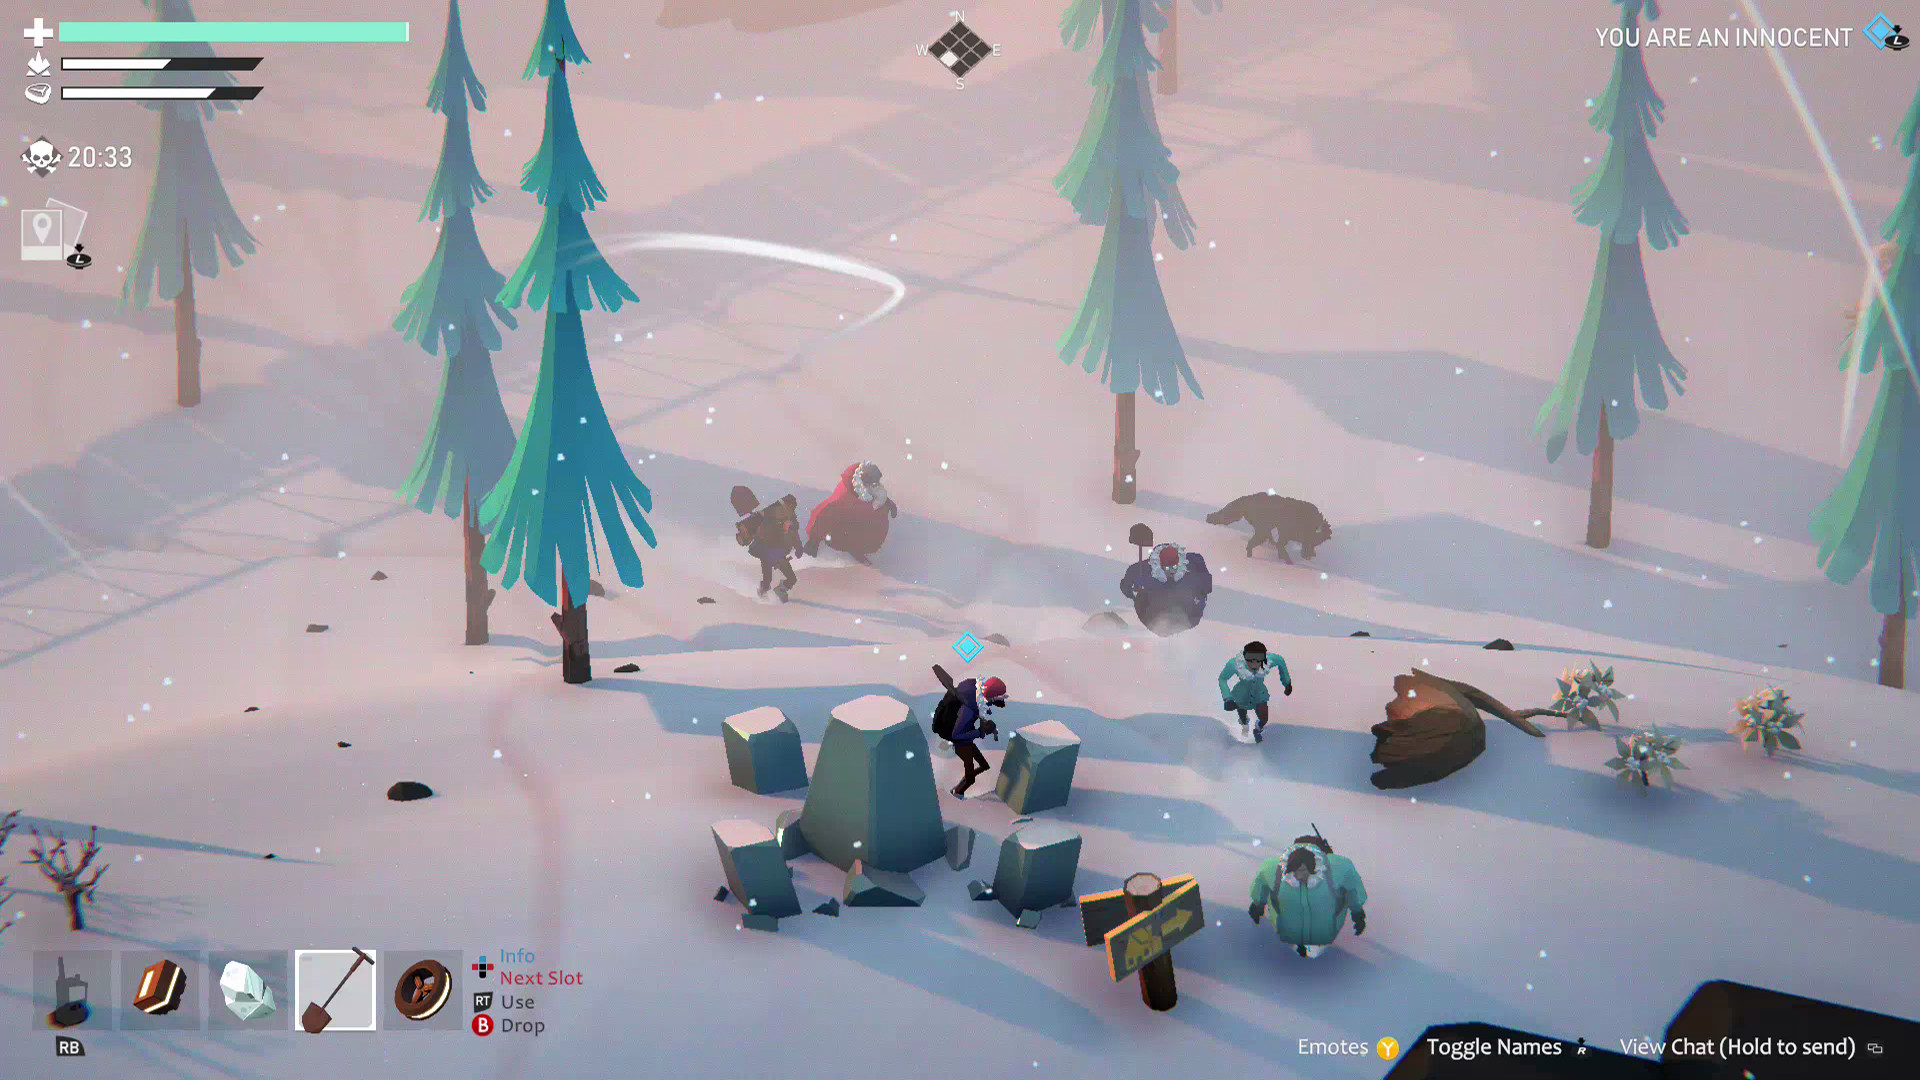 A screenshot from Project Winter